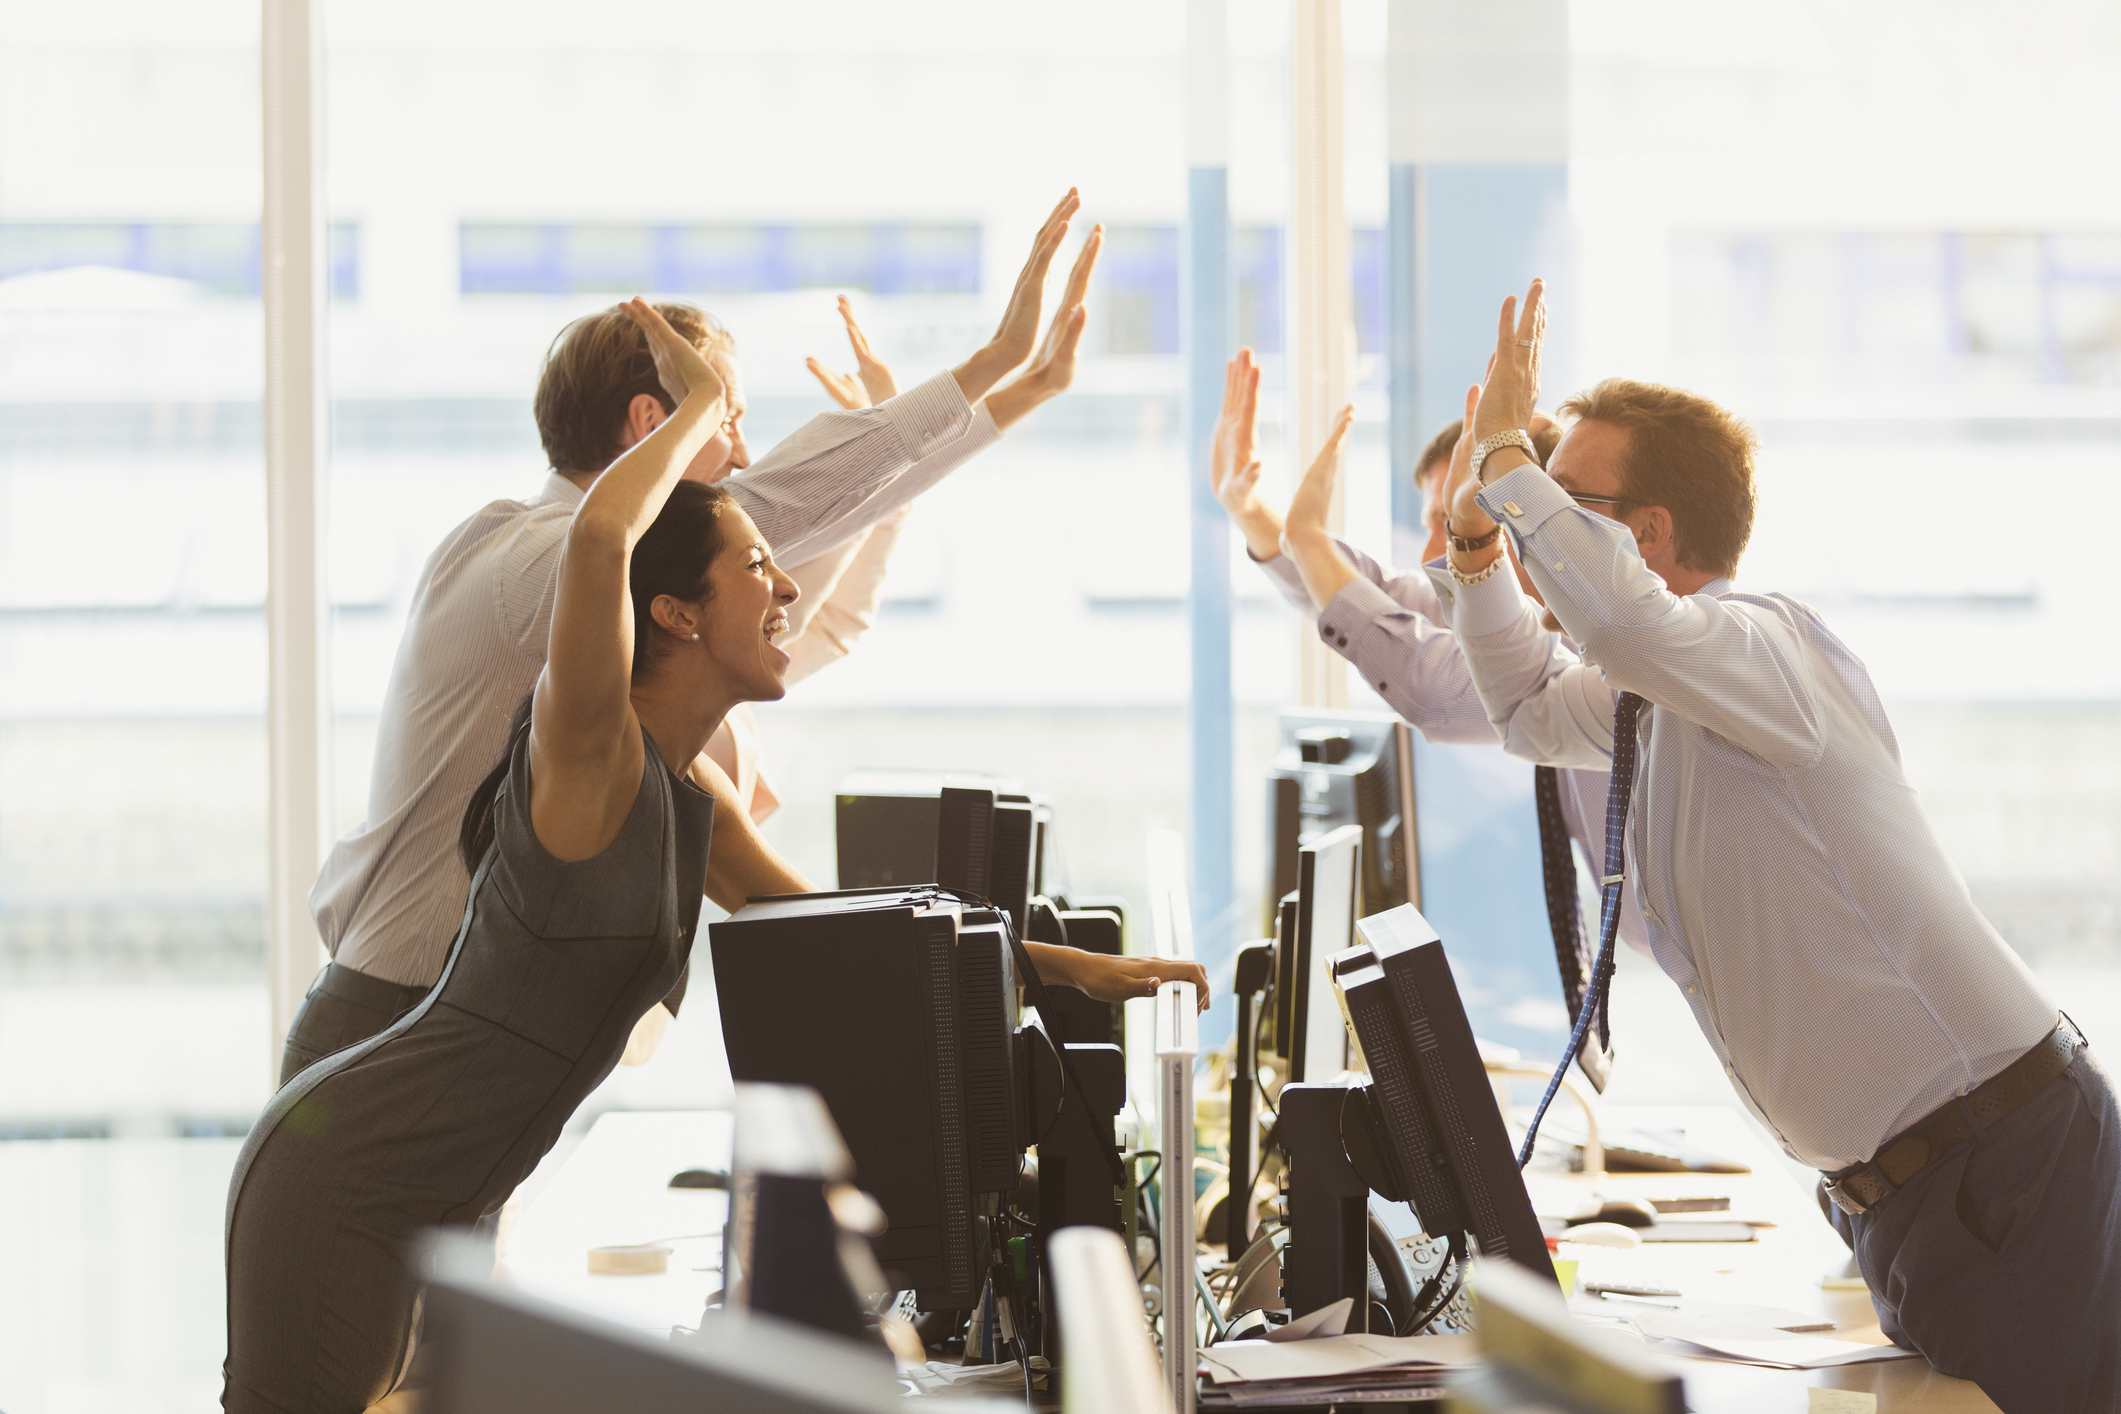 Exuberant business people high-fiving over computers in office